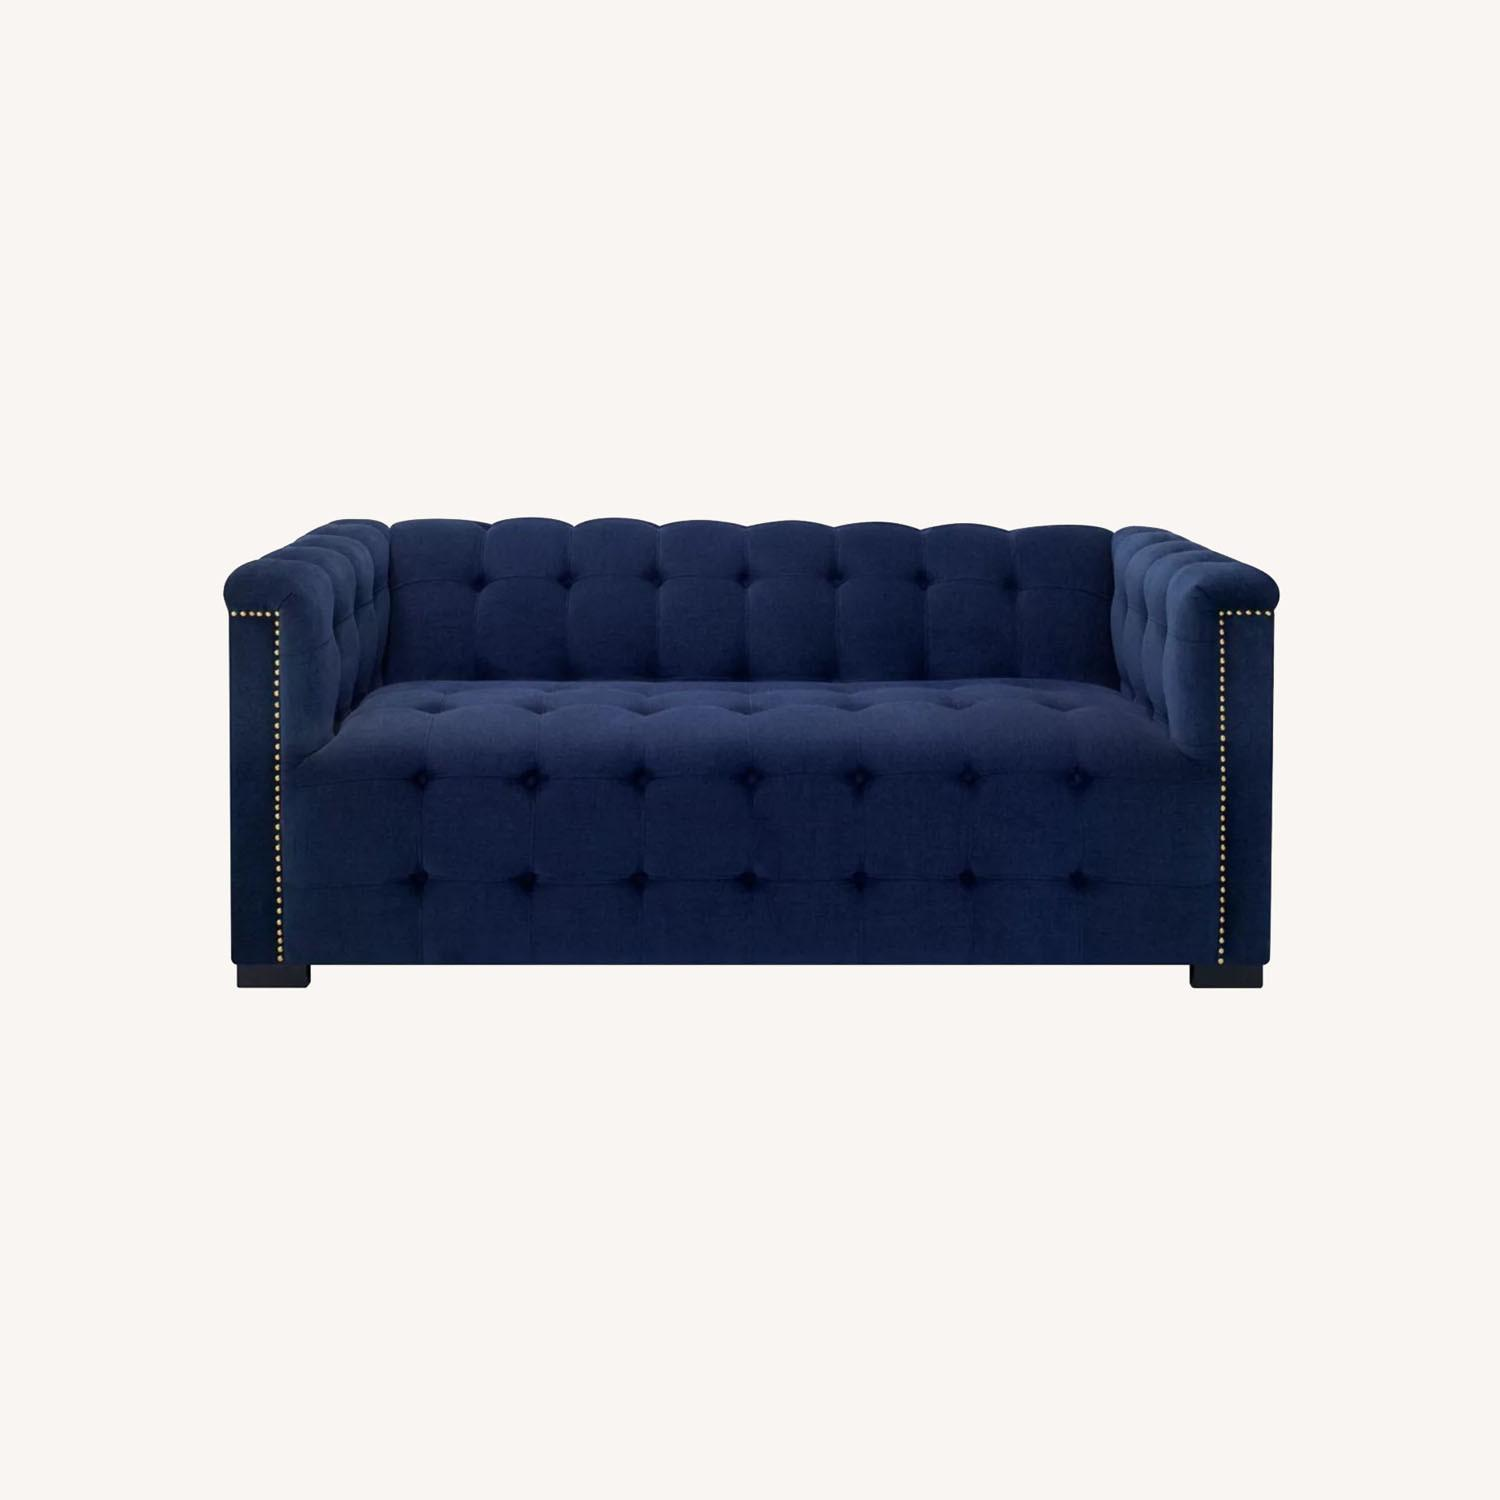 Raymour Flanigan Navy Tufted Loveseat - image-0